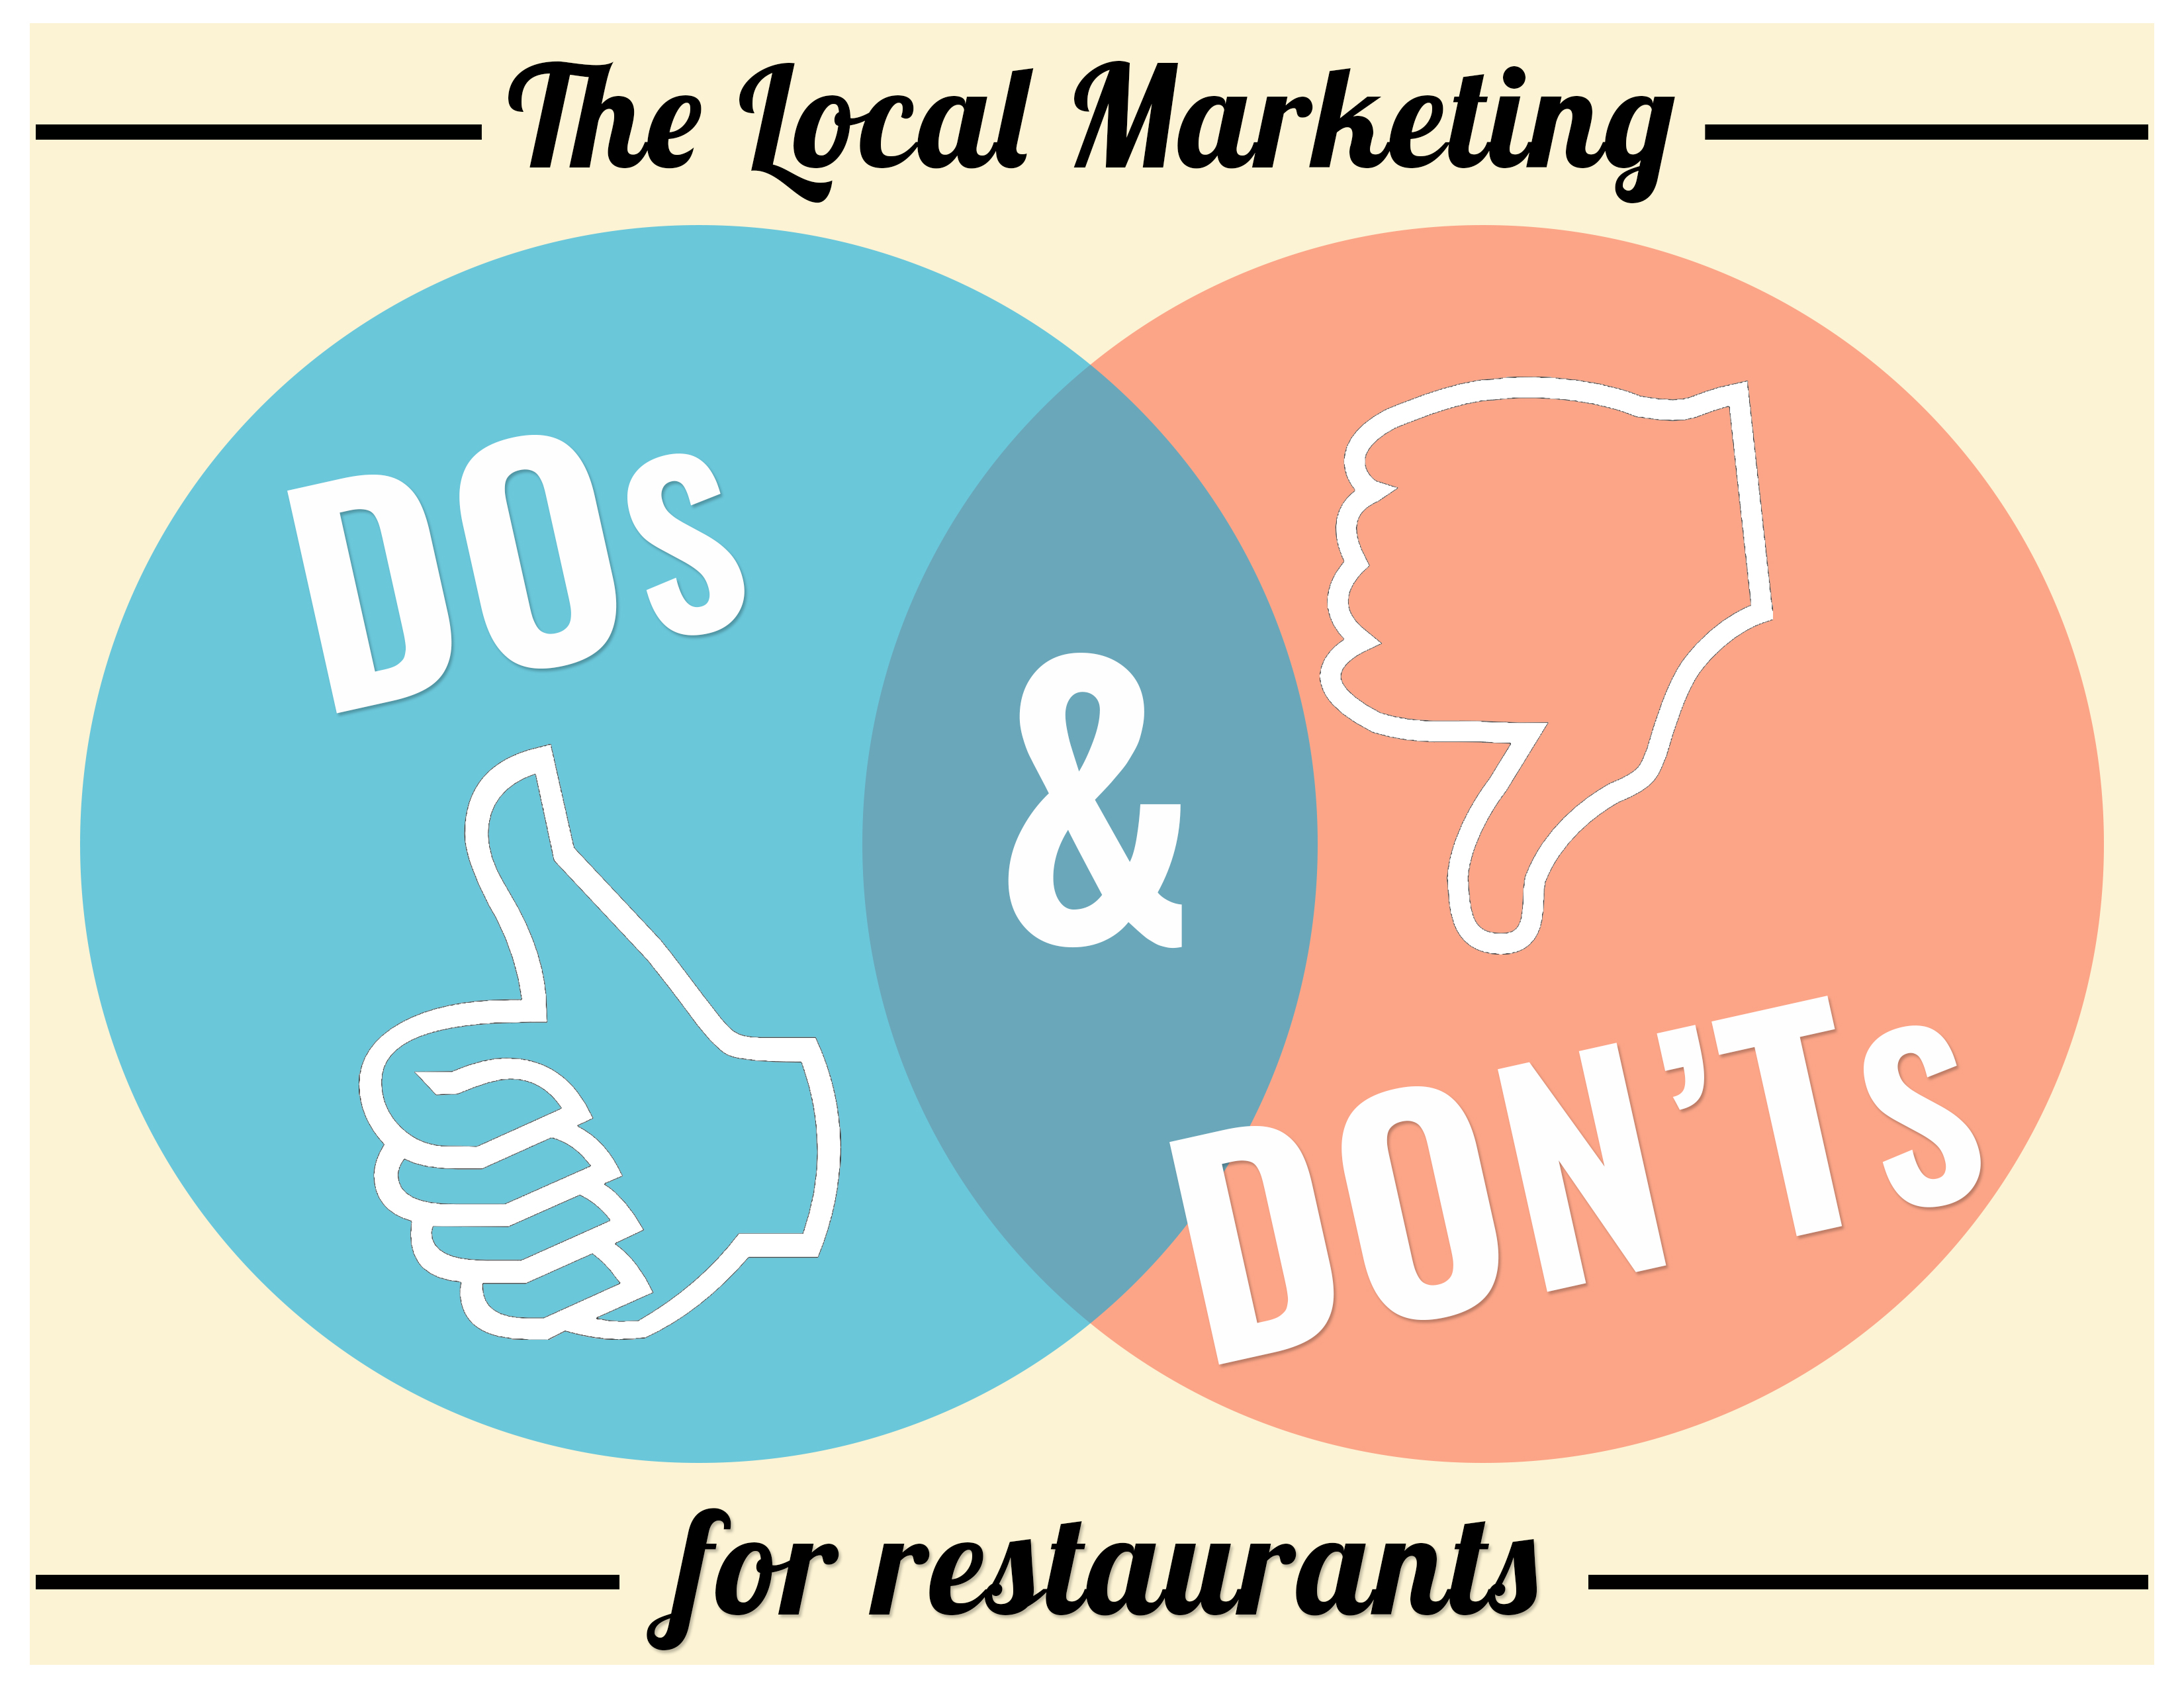 040915_The_Local_Marketing_Dos__Donts_-_For_Restaurants